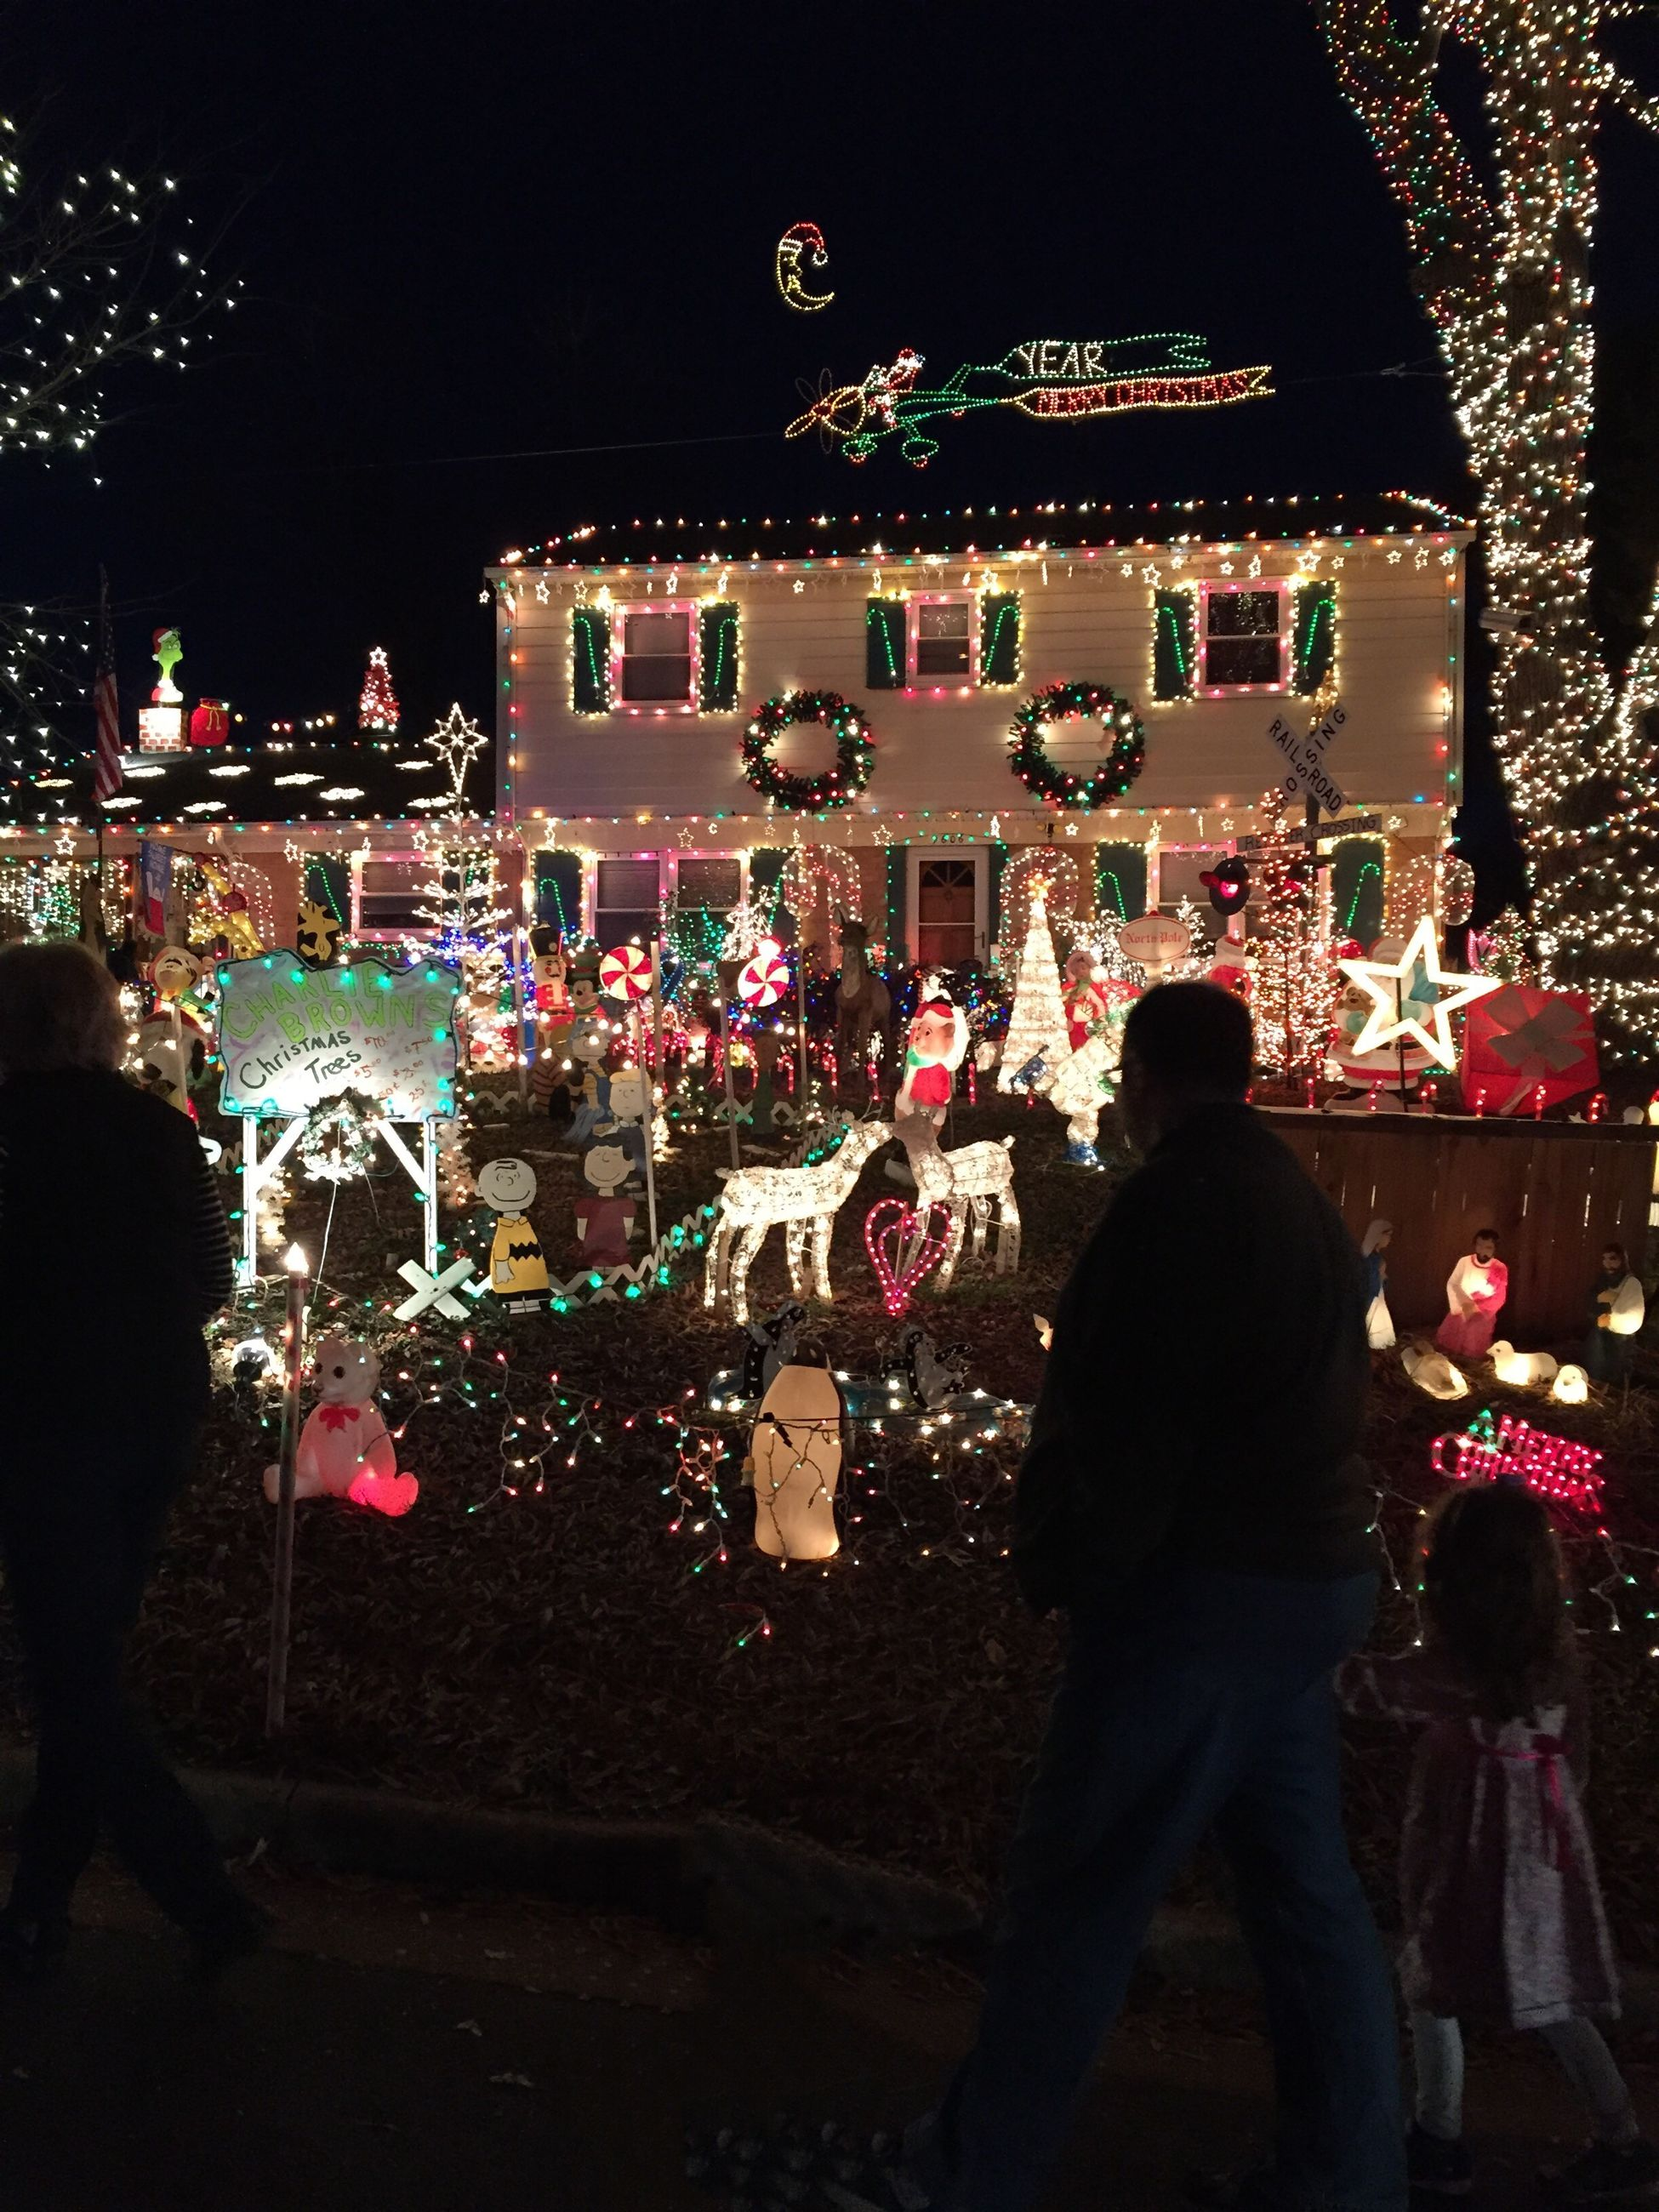 illuminated, night, real people, large group of people, leisure activity, outdoors, building exterior, celebration, men, sky, christmas lights, christmas, women, architecture, christmas market, people, crowd, adults only, adult